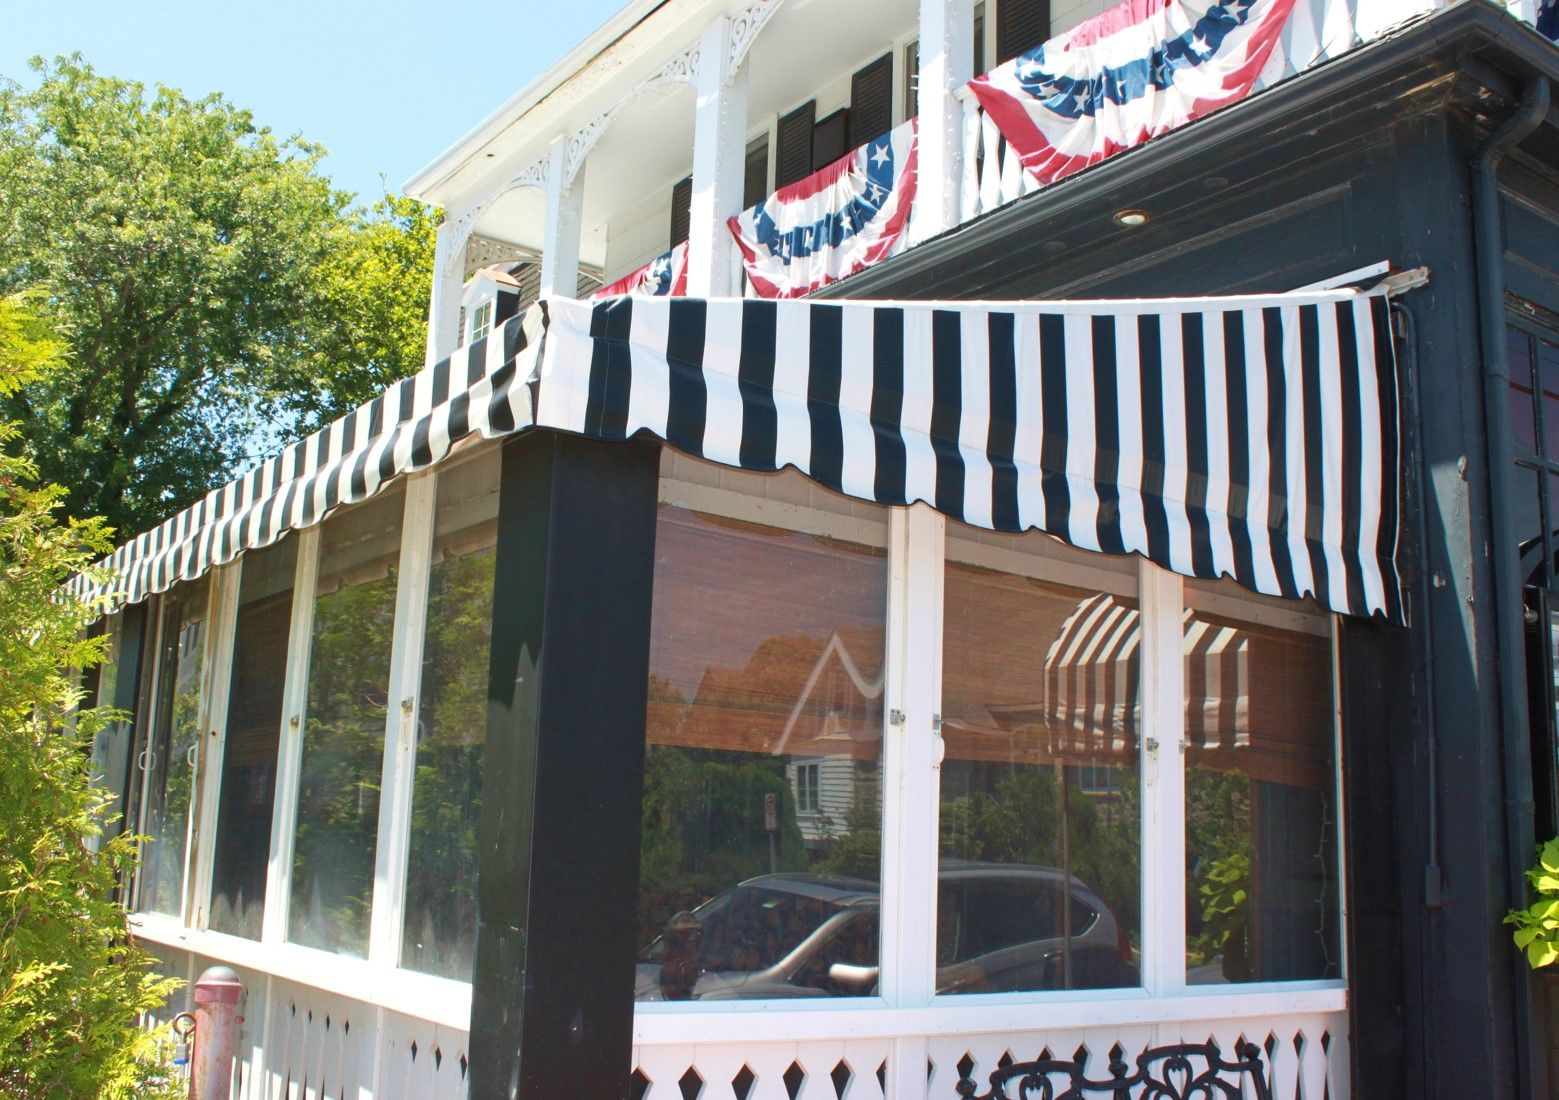 Custom Awning Enclosure By Bill S Canvas Shop In Southern New Jersey Custom Awnings Outdoor Decor Awning